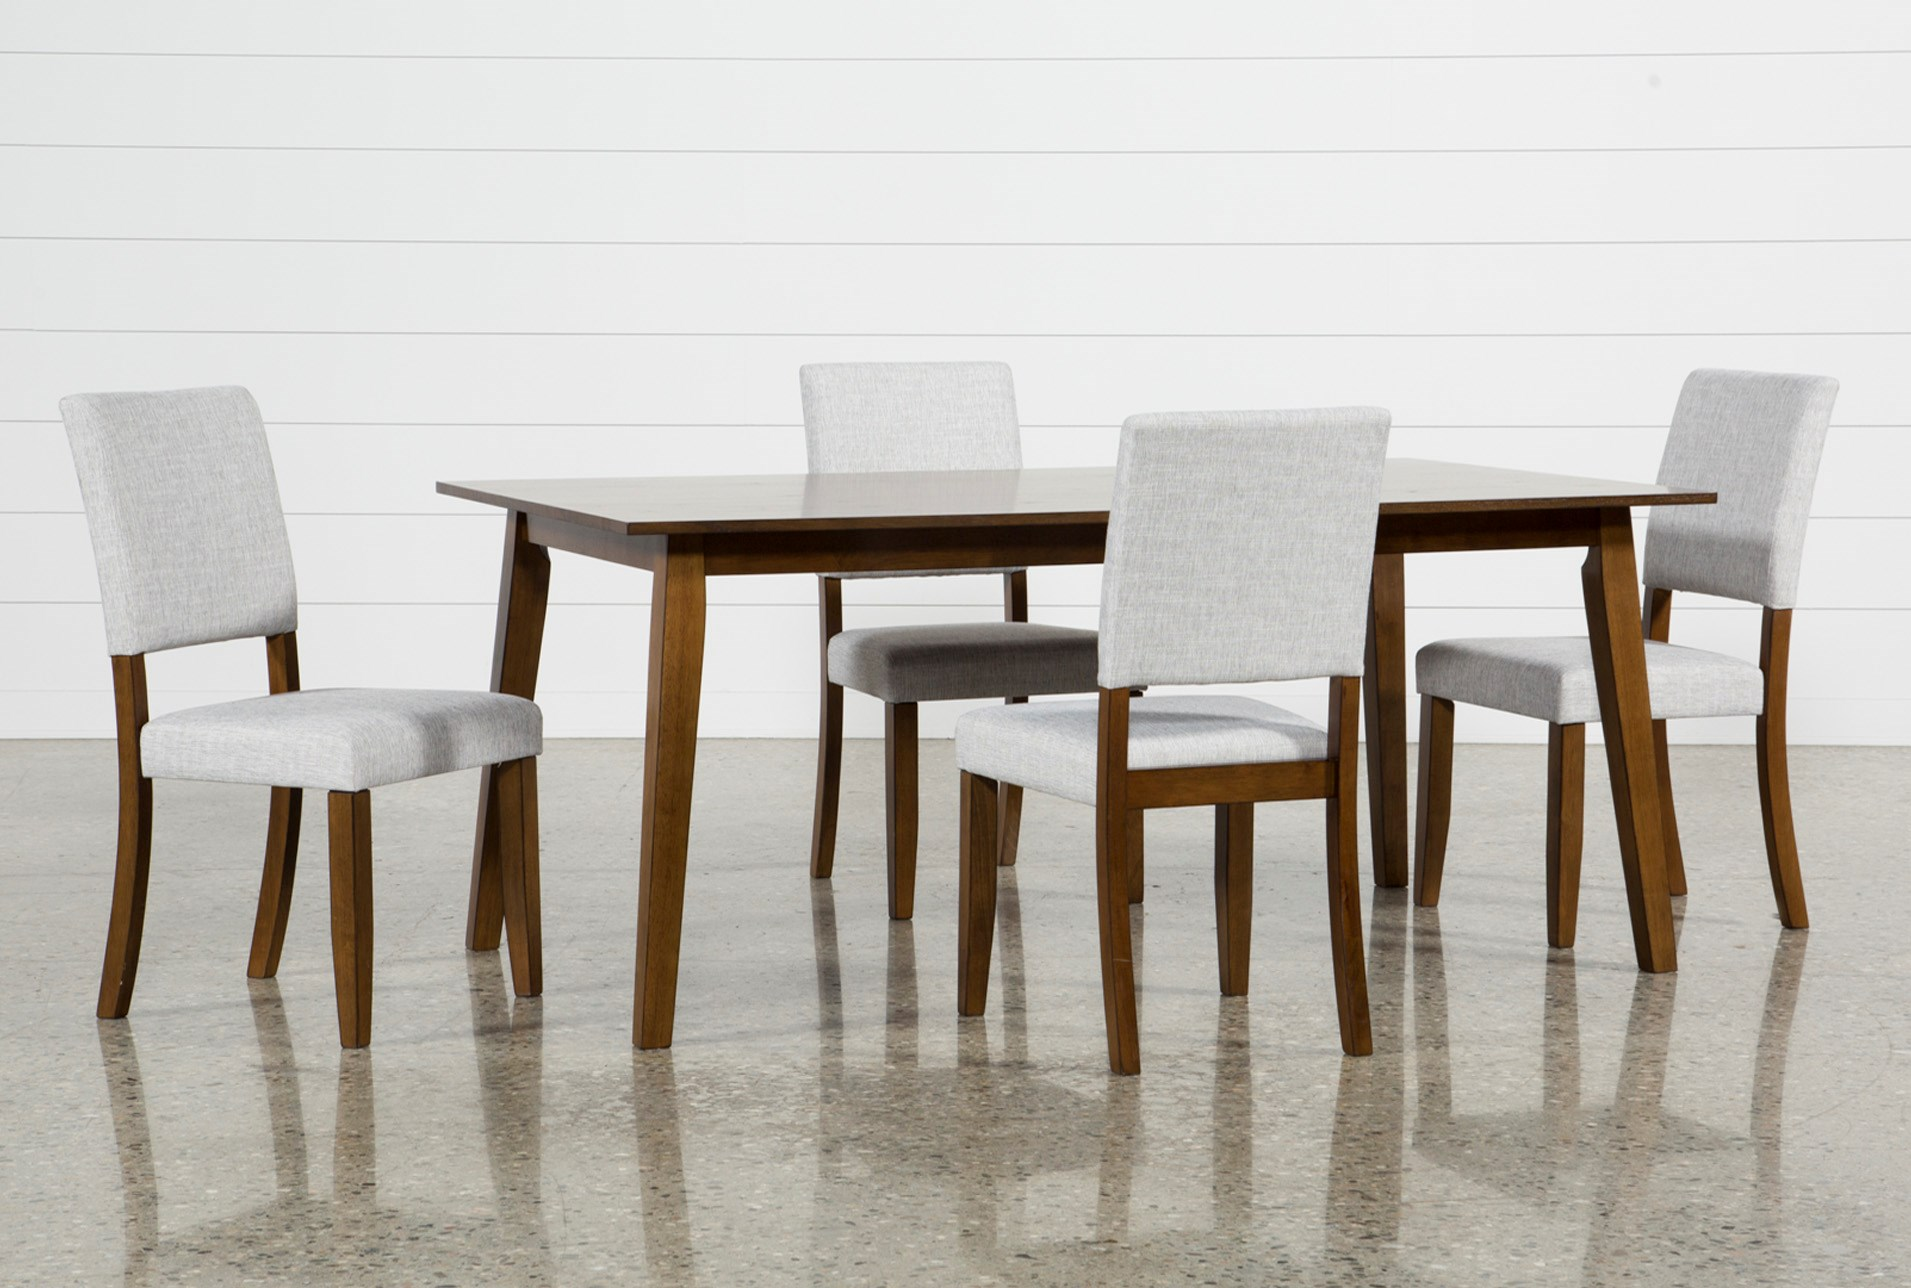 small dining room sets for small spaces. Cora 5 Piece Dining Set Small Room Sets For Spaces L